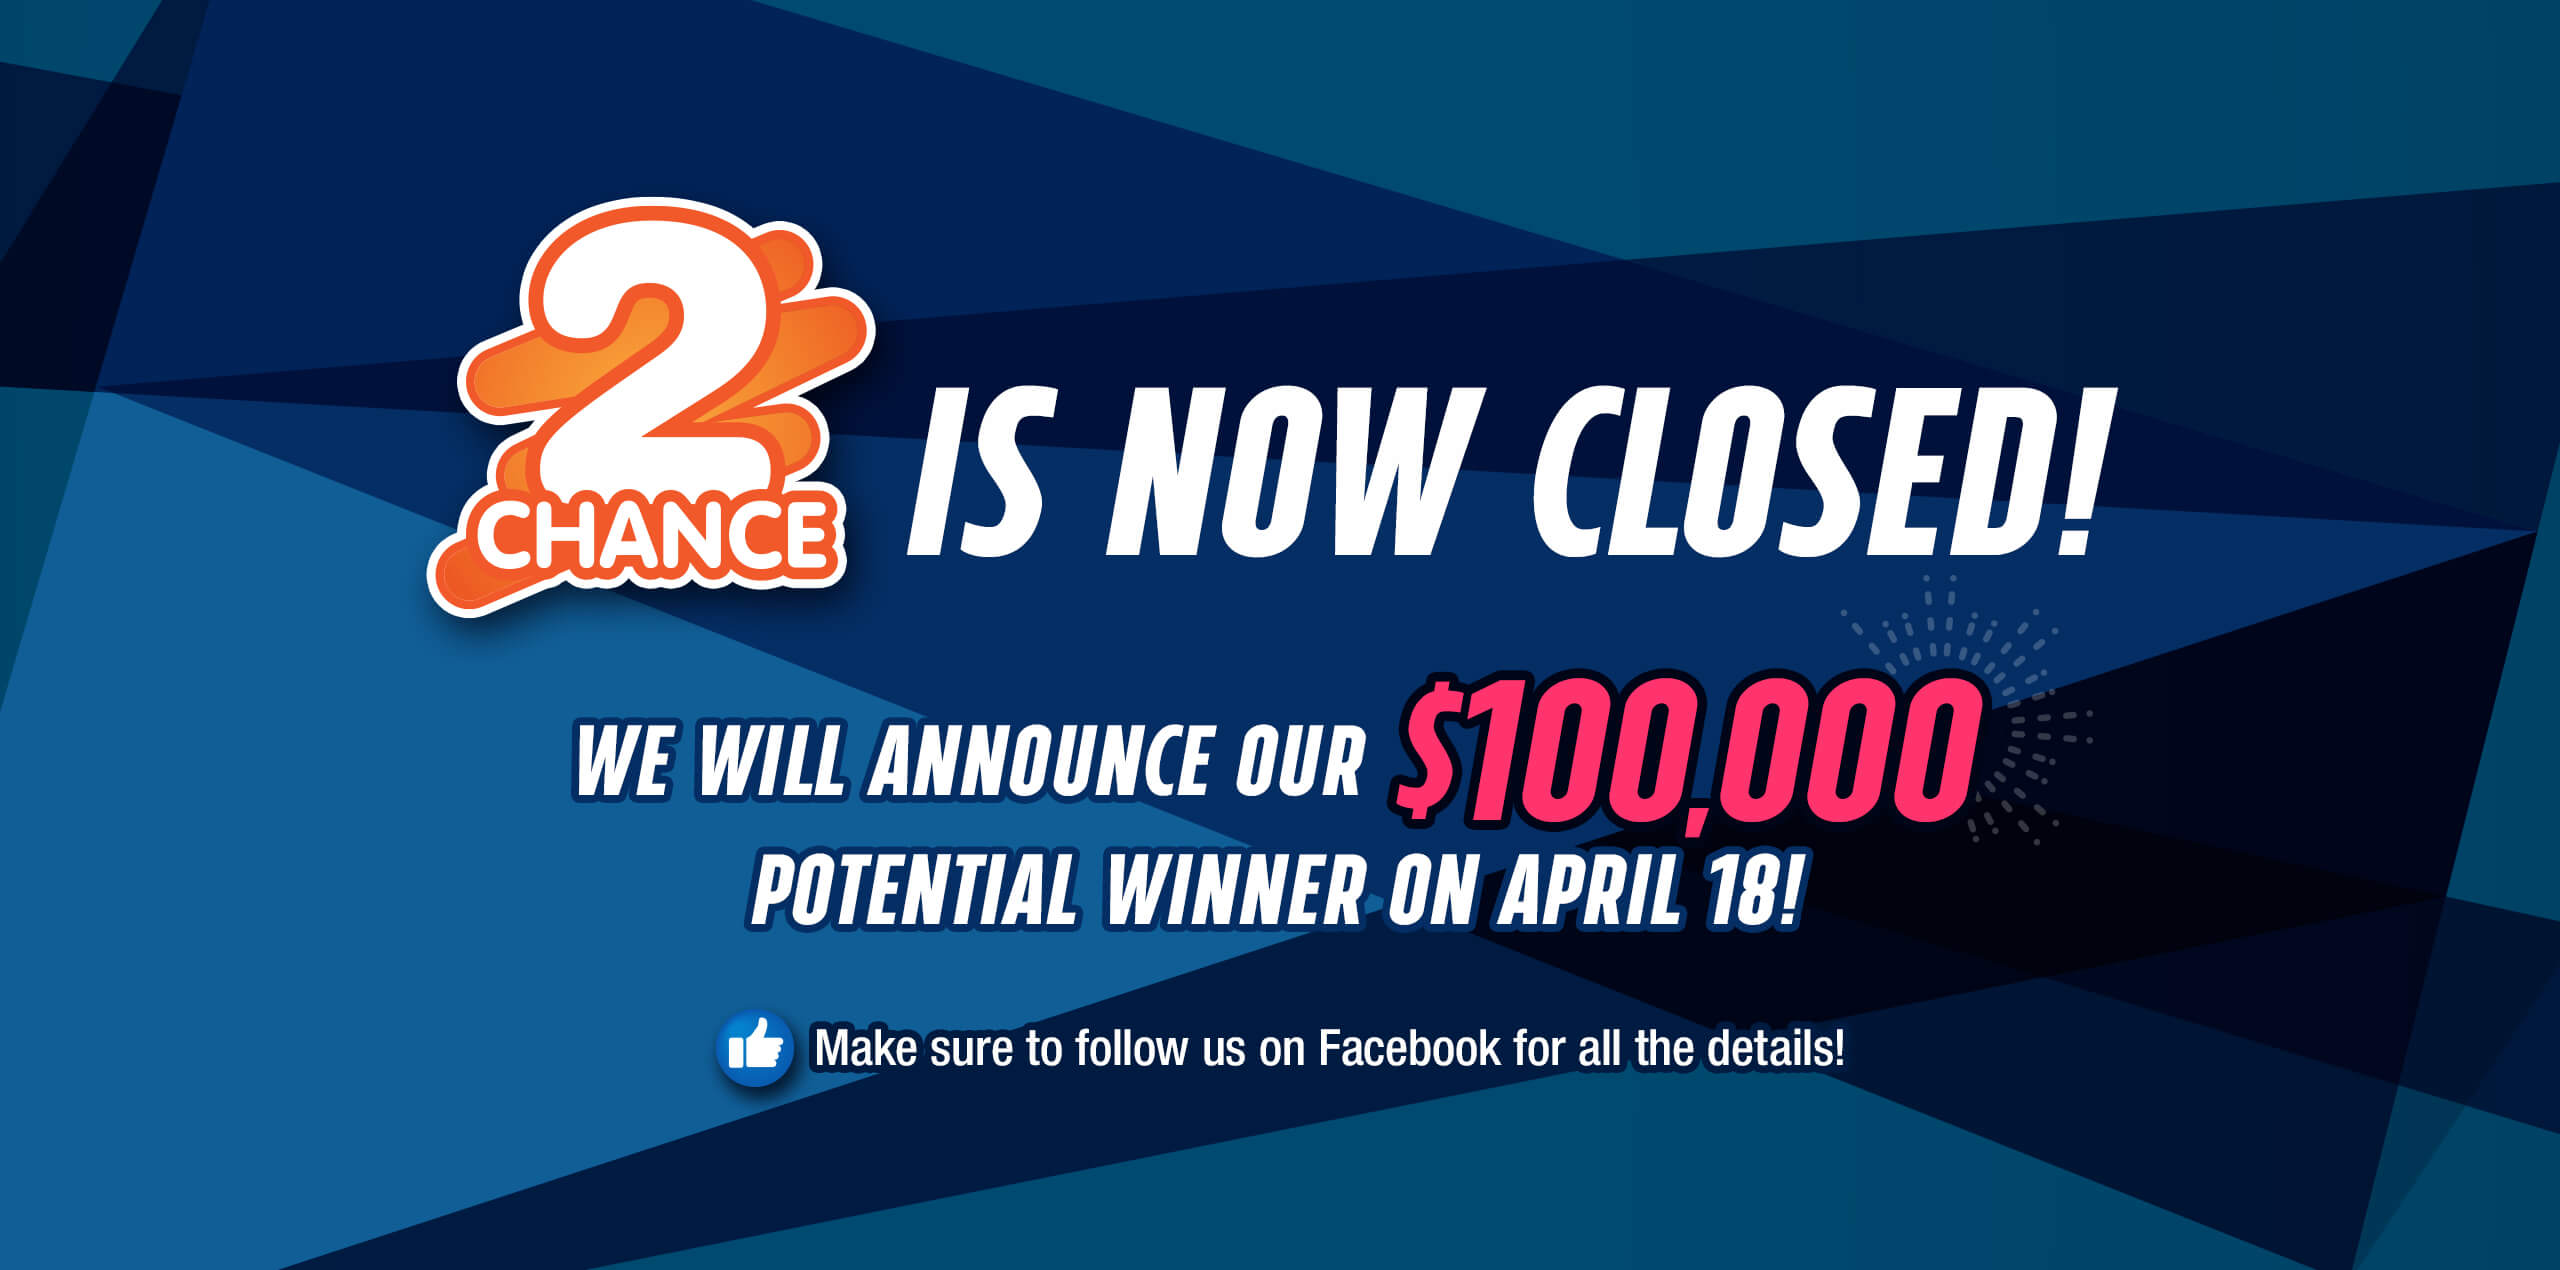 2CHANCE IS NOW CLOSED! WE WILL ANNOUNCE OUR $100,000 POTENTIAL WINNER ON APRIL 18! MAKE SURE TO FOLLOW US ON FACEBOOK FOR ALL THE DETAILS!